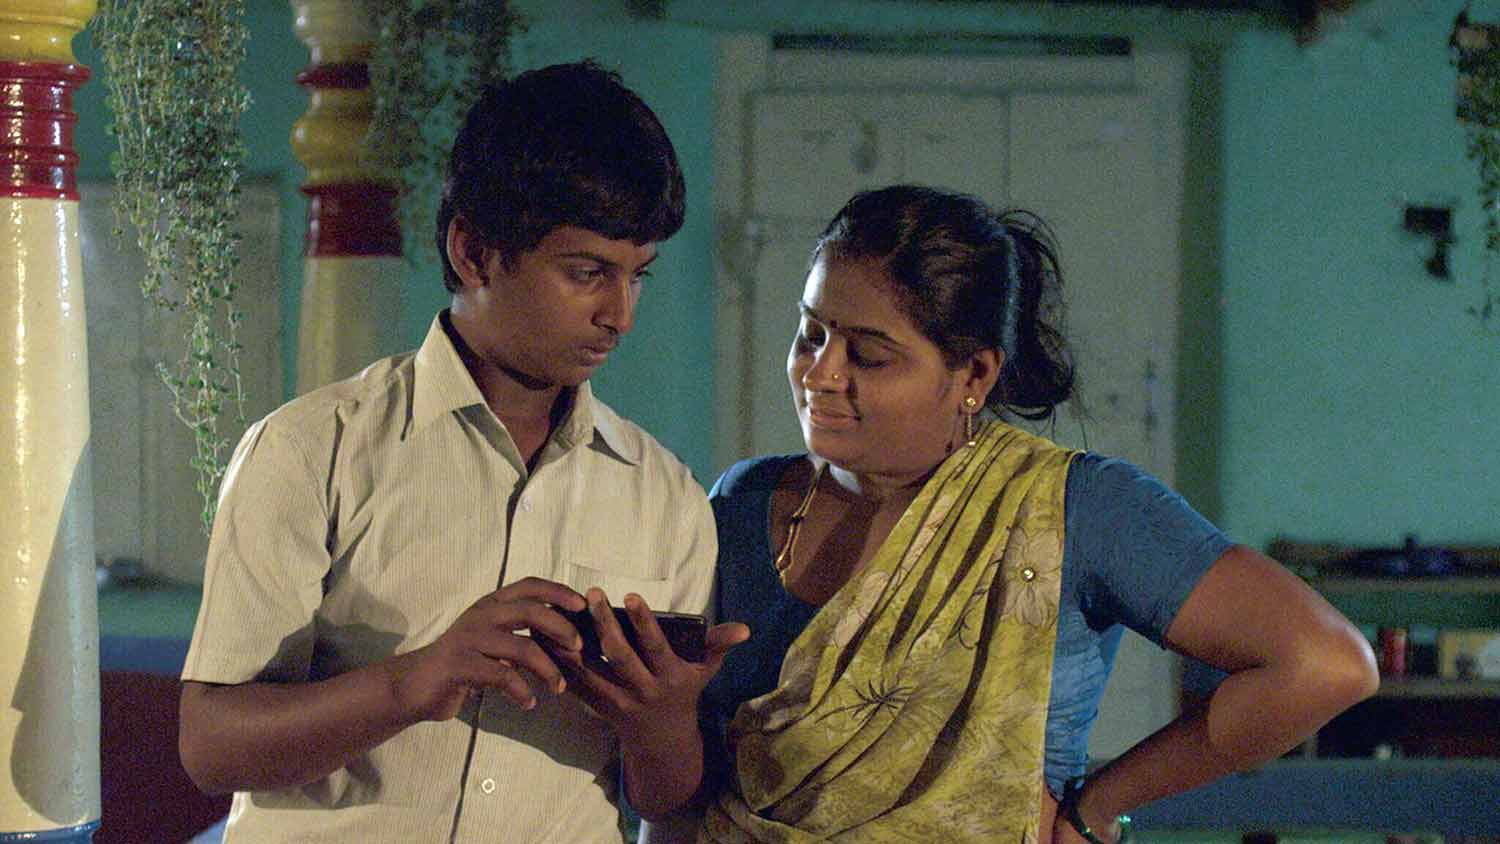 Scene from the film Balekempa in which a boy shows a girl something on his phone and watches for her reaction, shown at the East End Film Festival